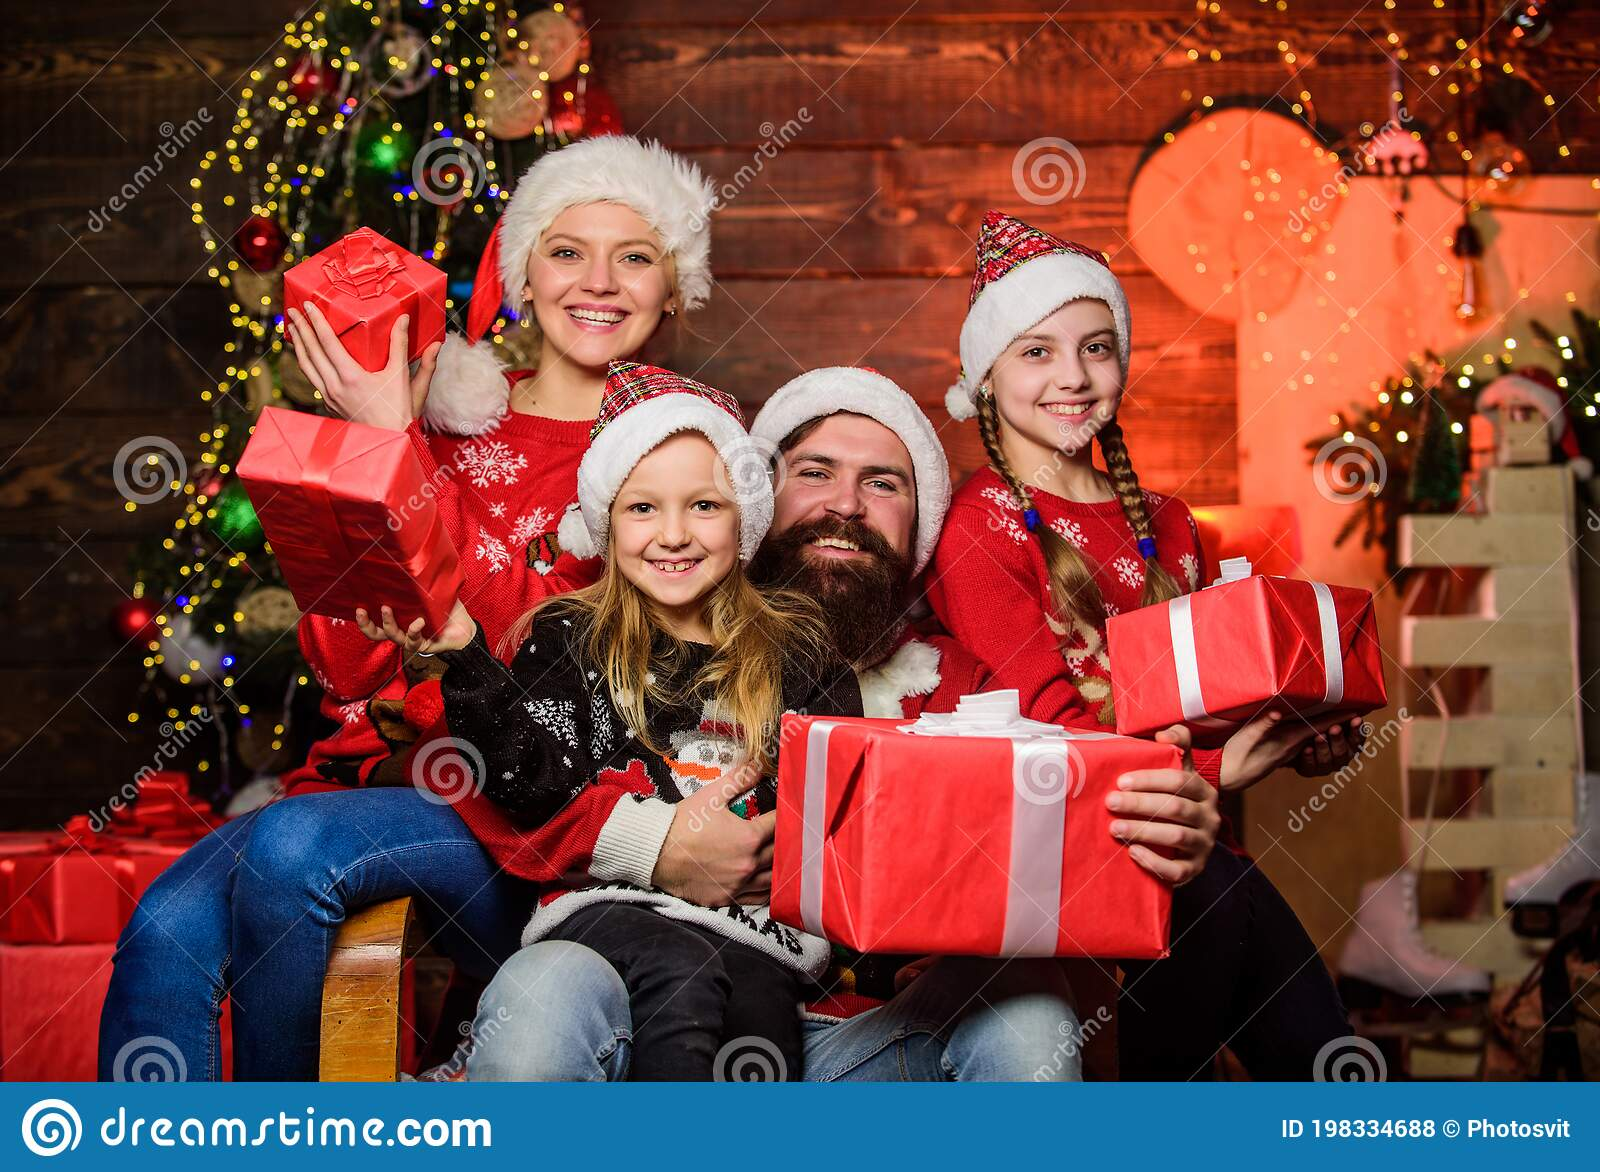 339 Happy Girls Open Gifts Christmas Photos Free Royalty Free Stock Photos From Dreamstime